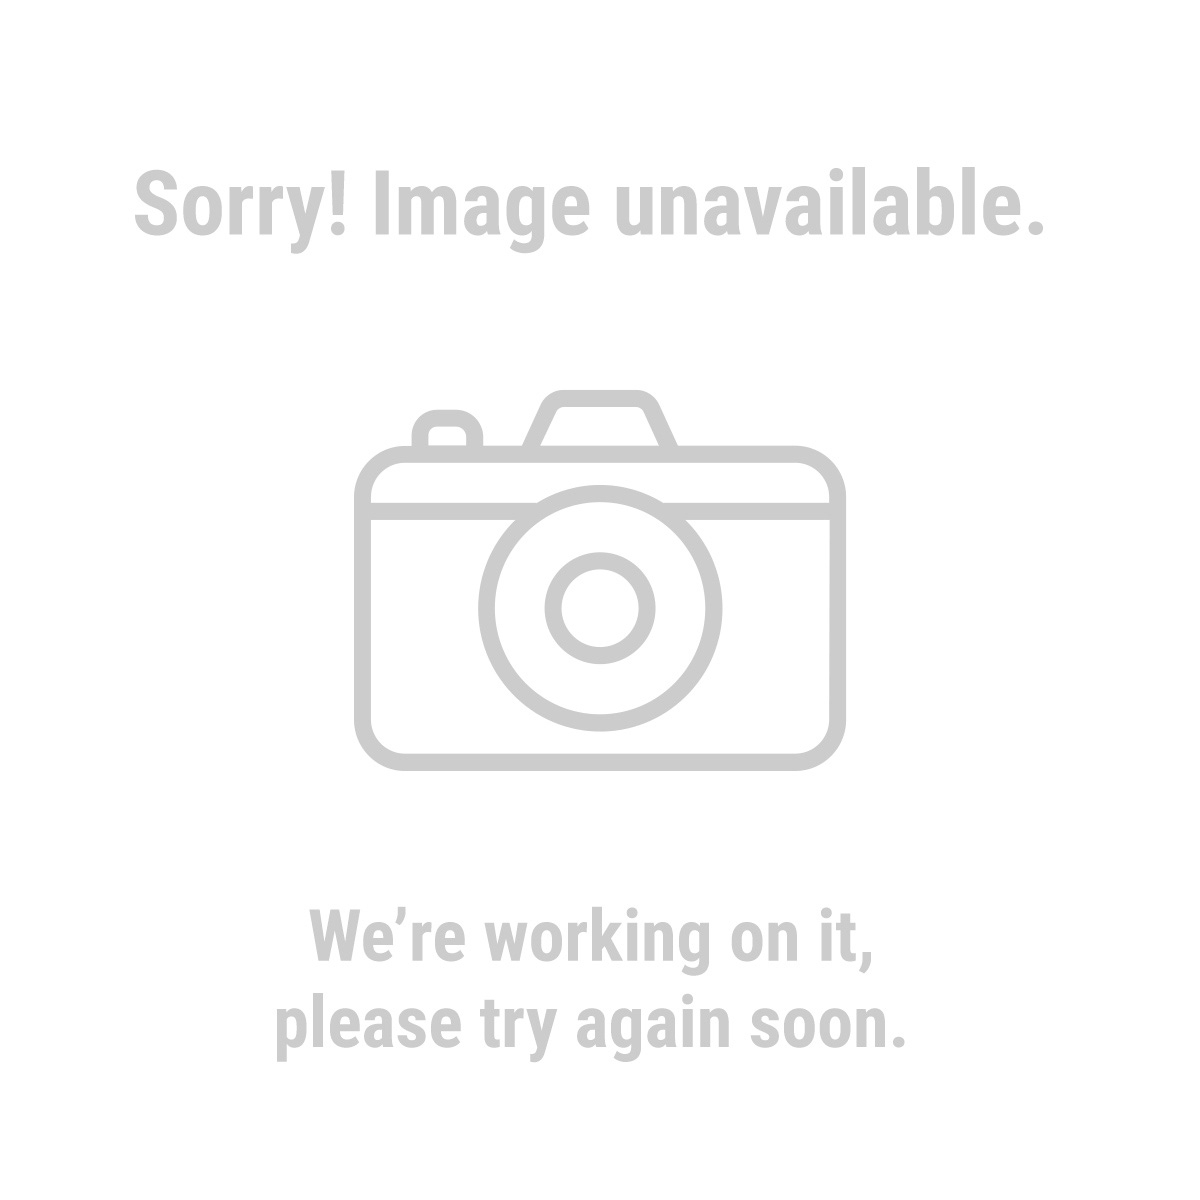 U.S. General 61634 26 in. 4 Drawer 580 lb. Capacity Glossy Black Roller Cart